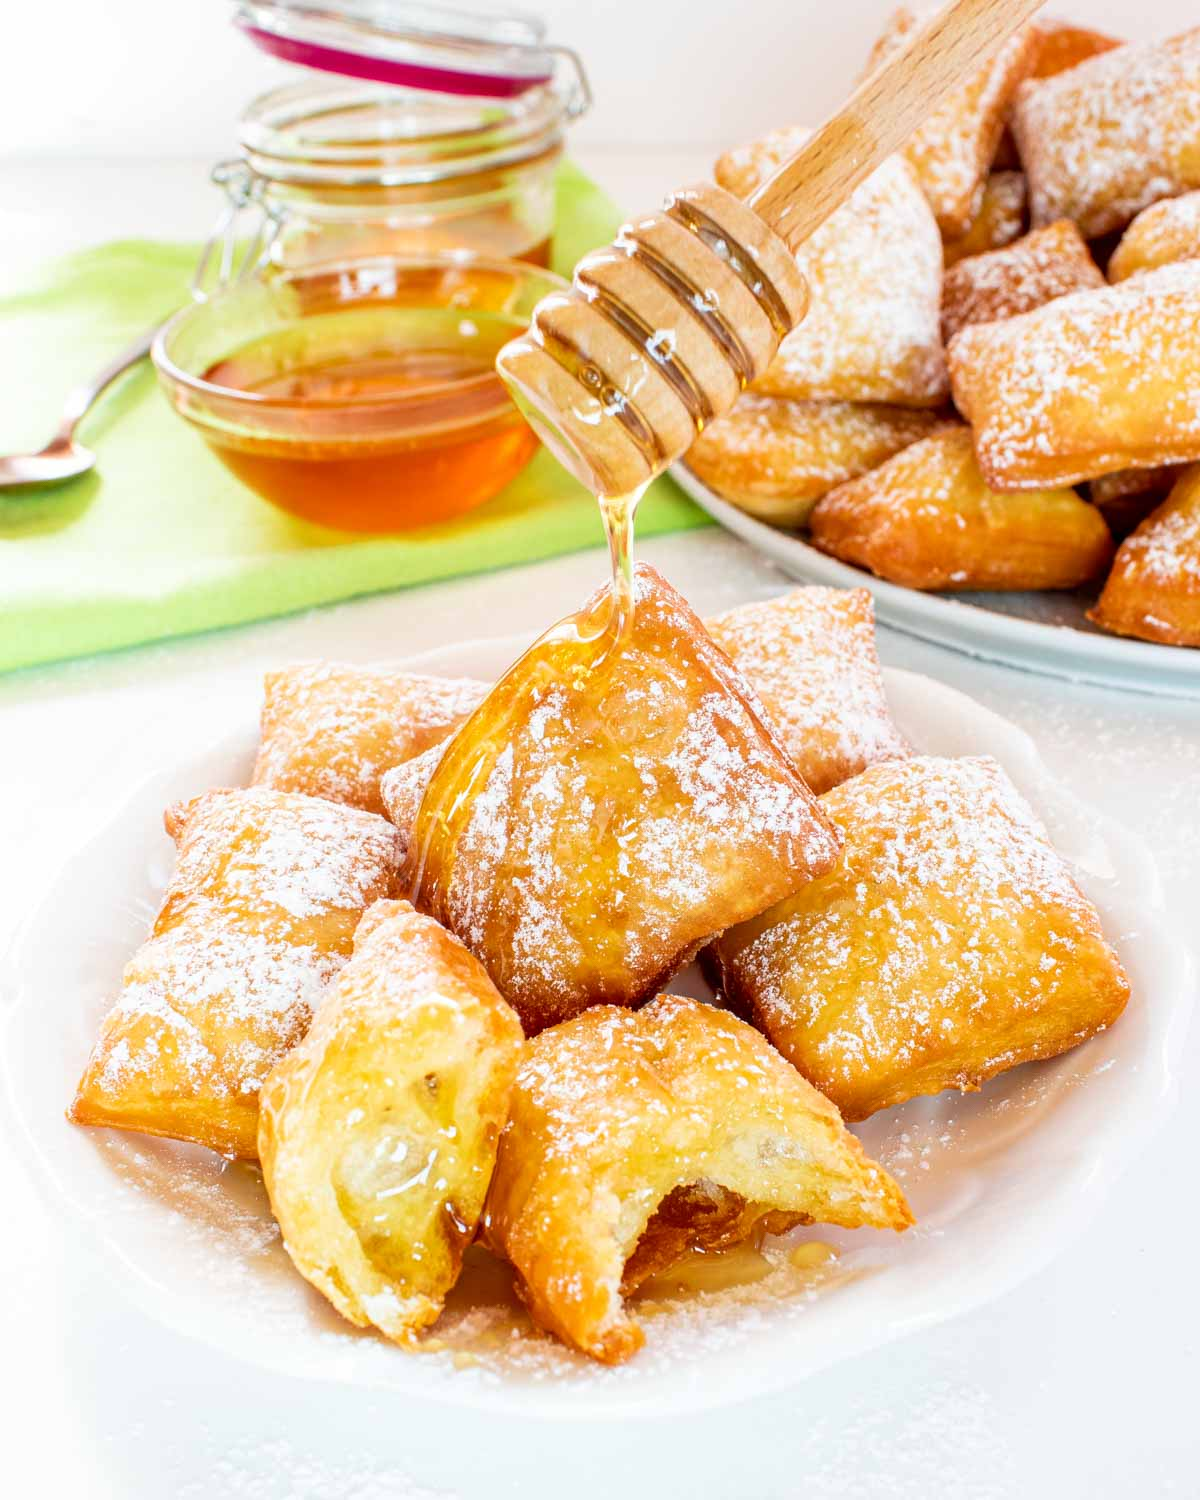 a few sopapillas on a small white plate and a hand drizzling some honey on them.